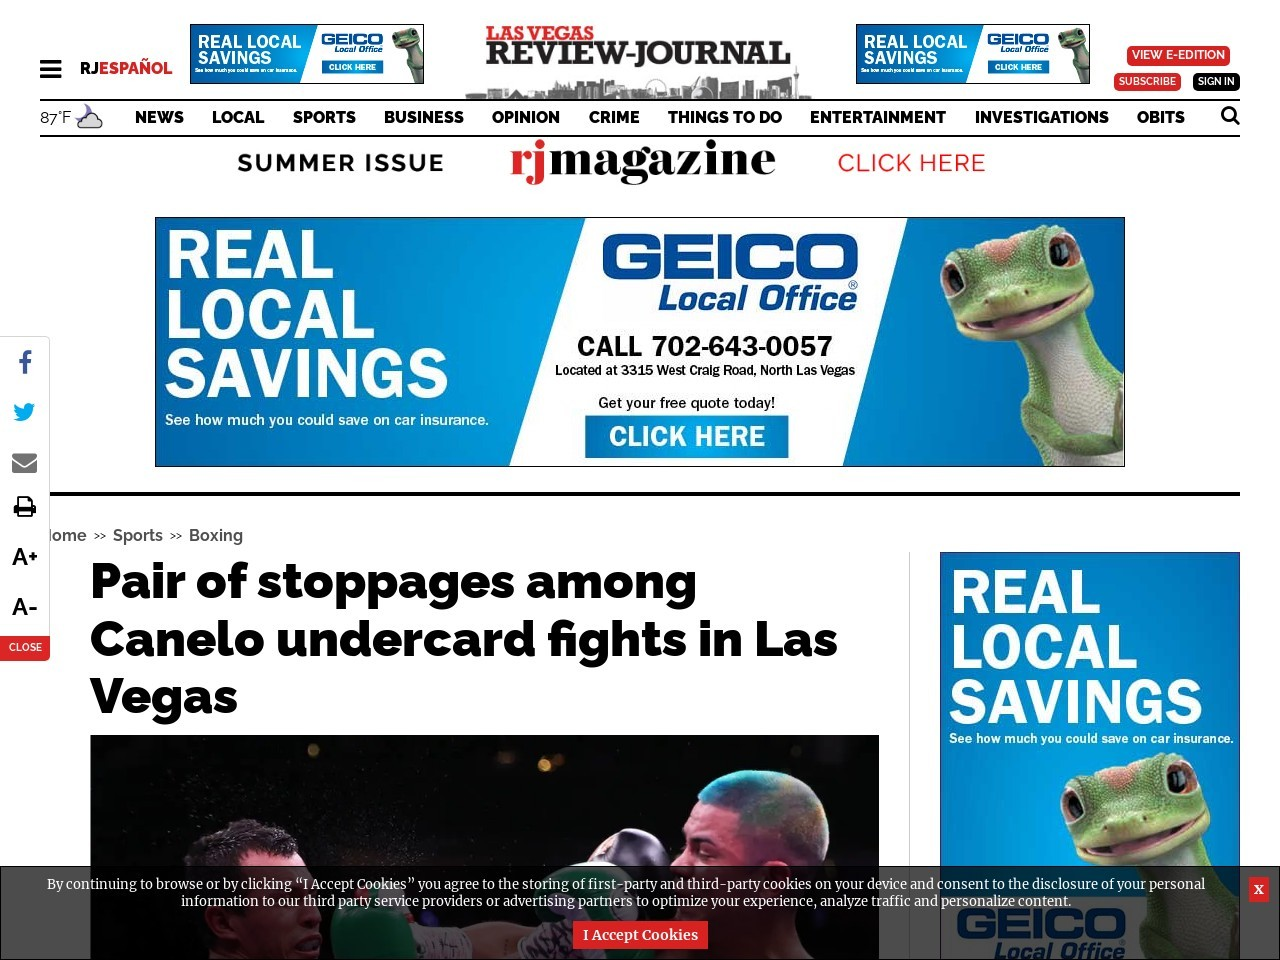 Pair of stoppages among Canelo undercard fights in Las Vegas